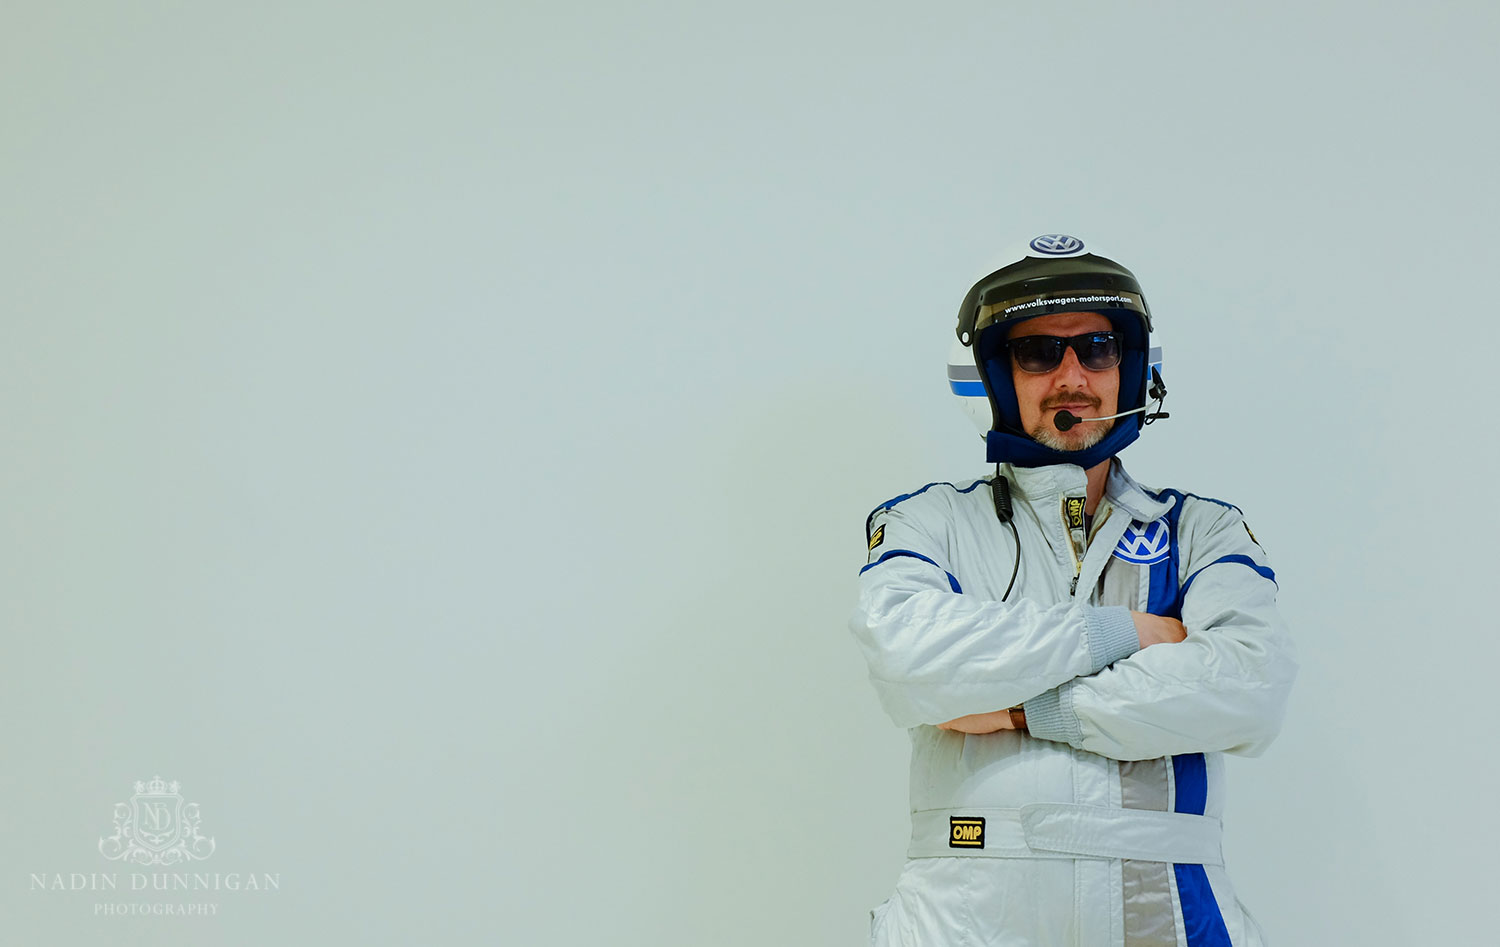 The Stig (or maybe some else called Colin), pre-shoot model